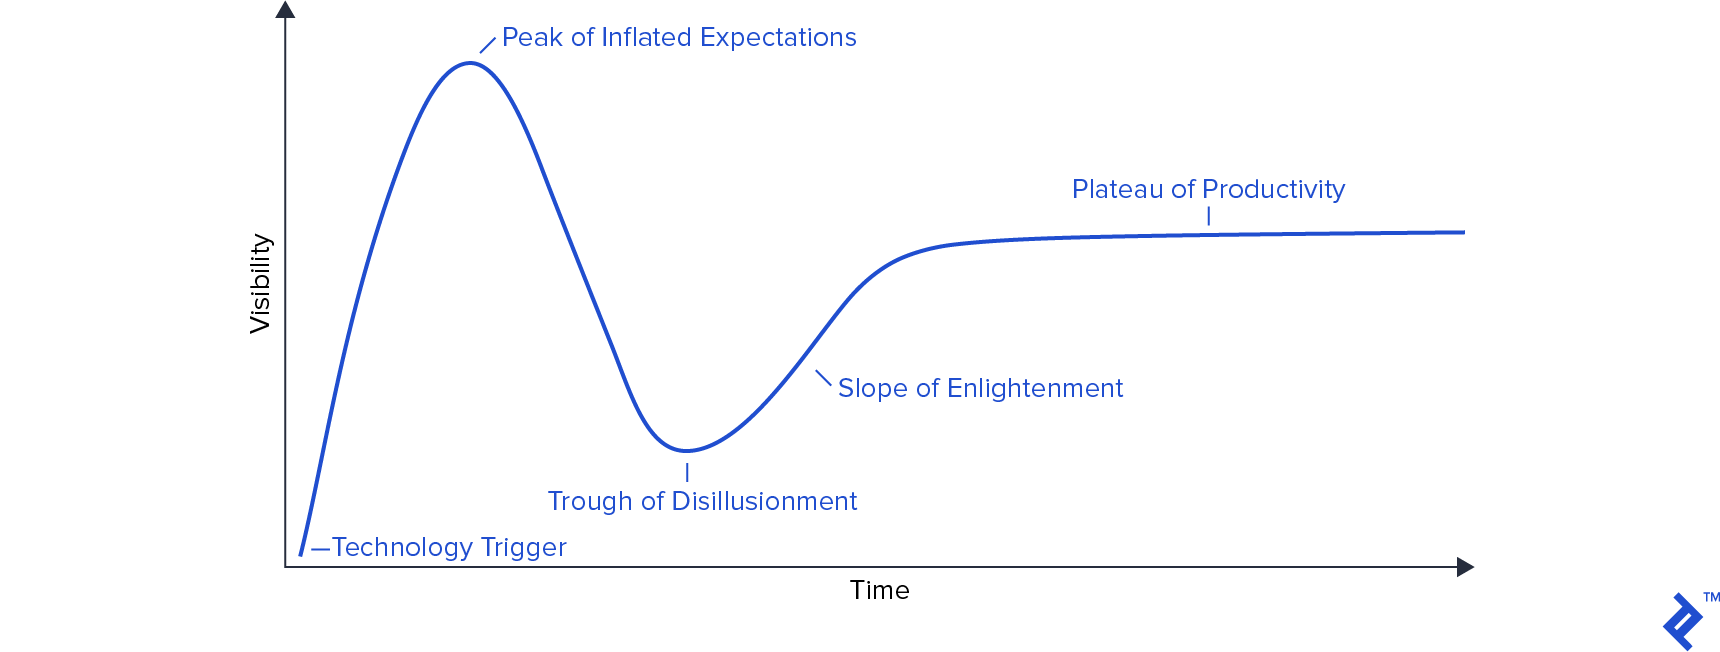 IT influencer Gartner Hype Cycle